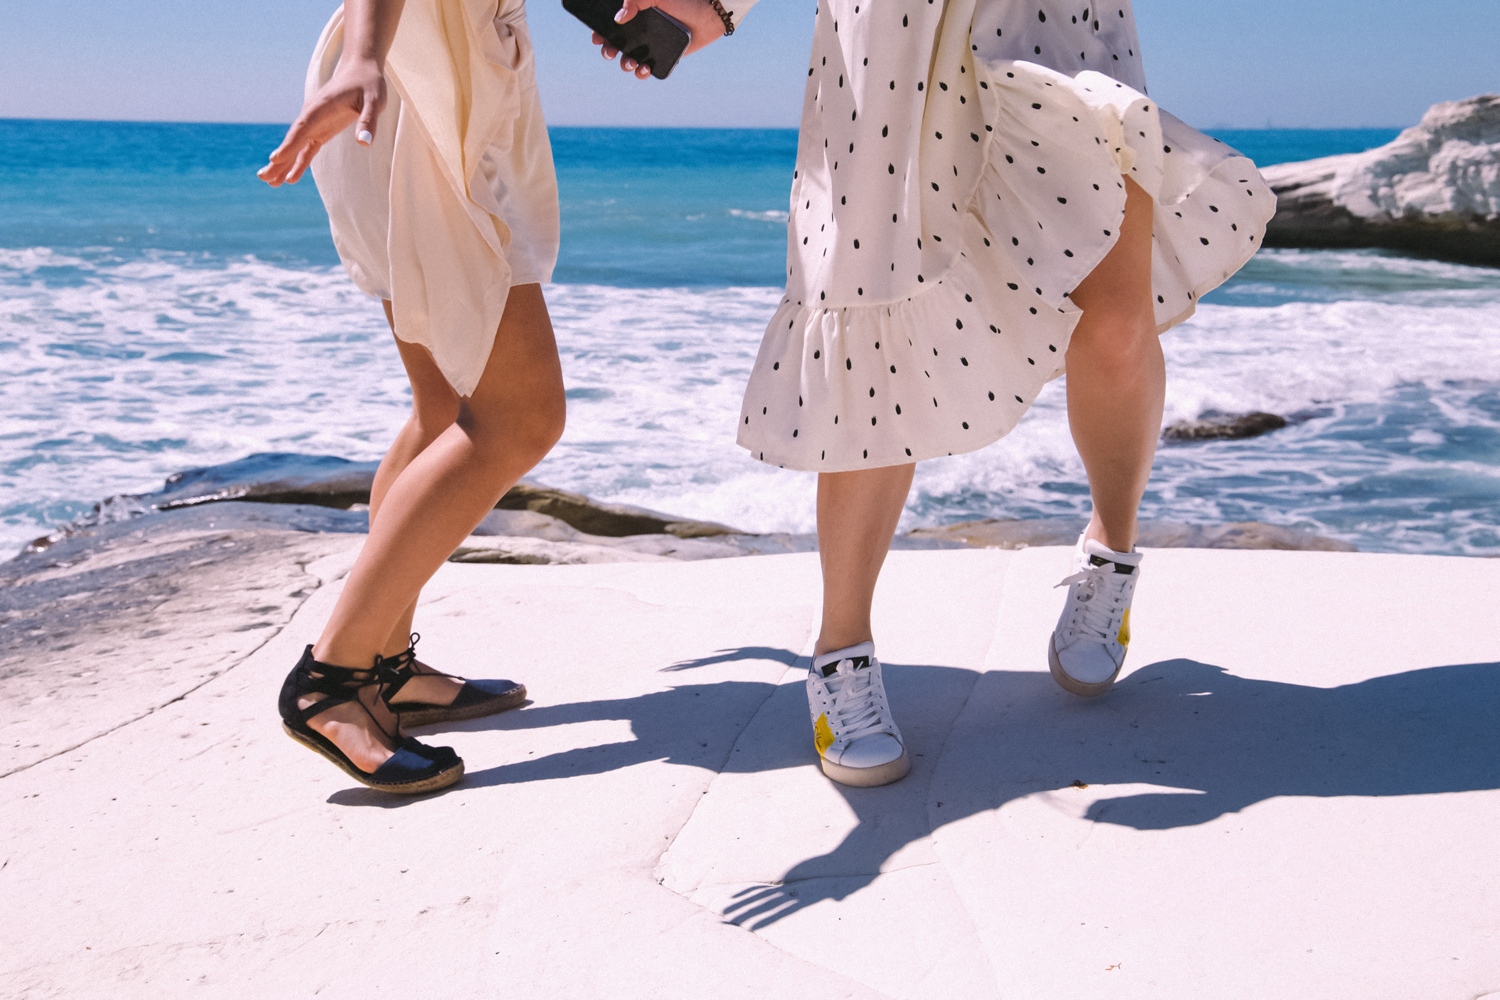 two girls in skirts and sandals are playing on the sunny beach